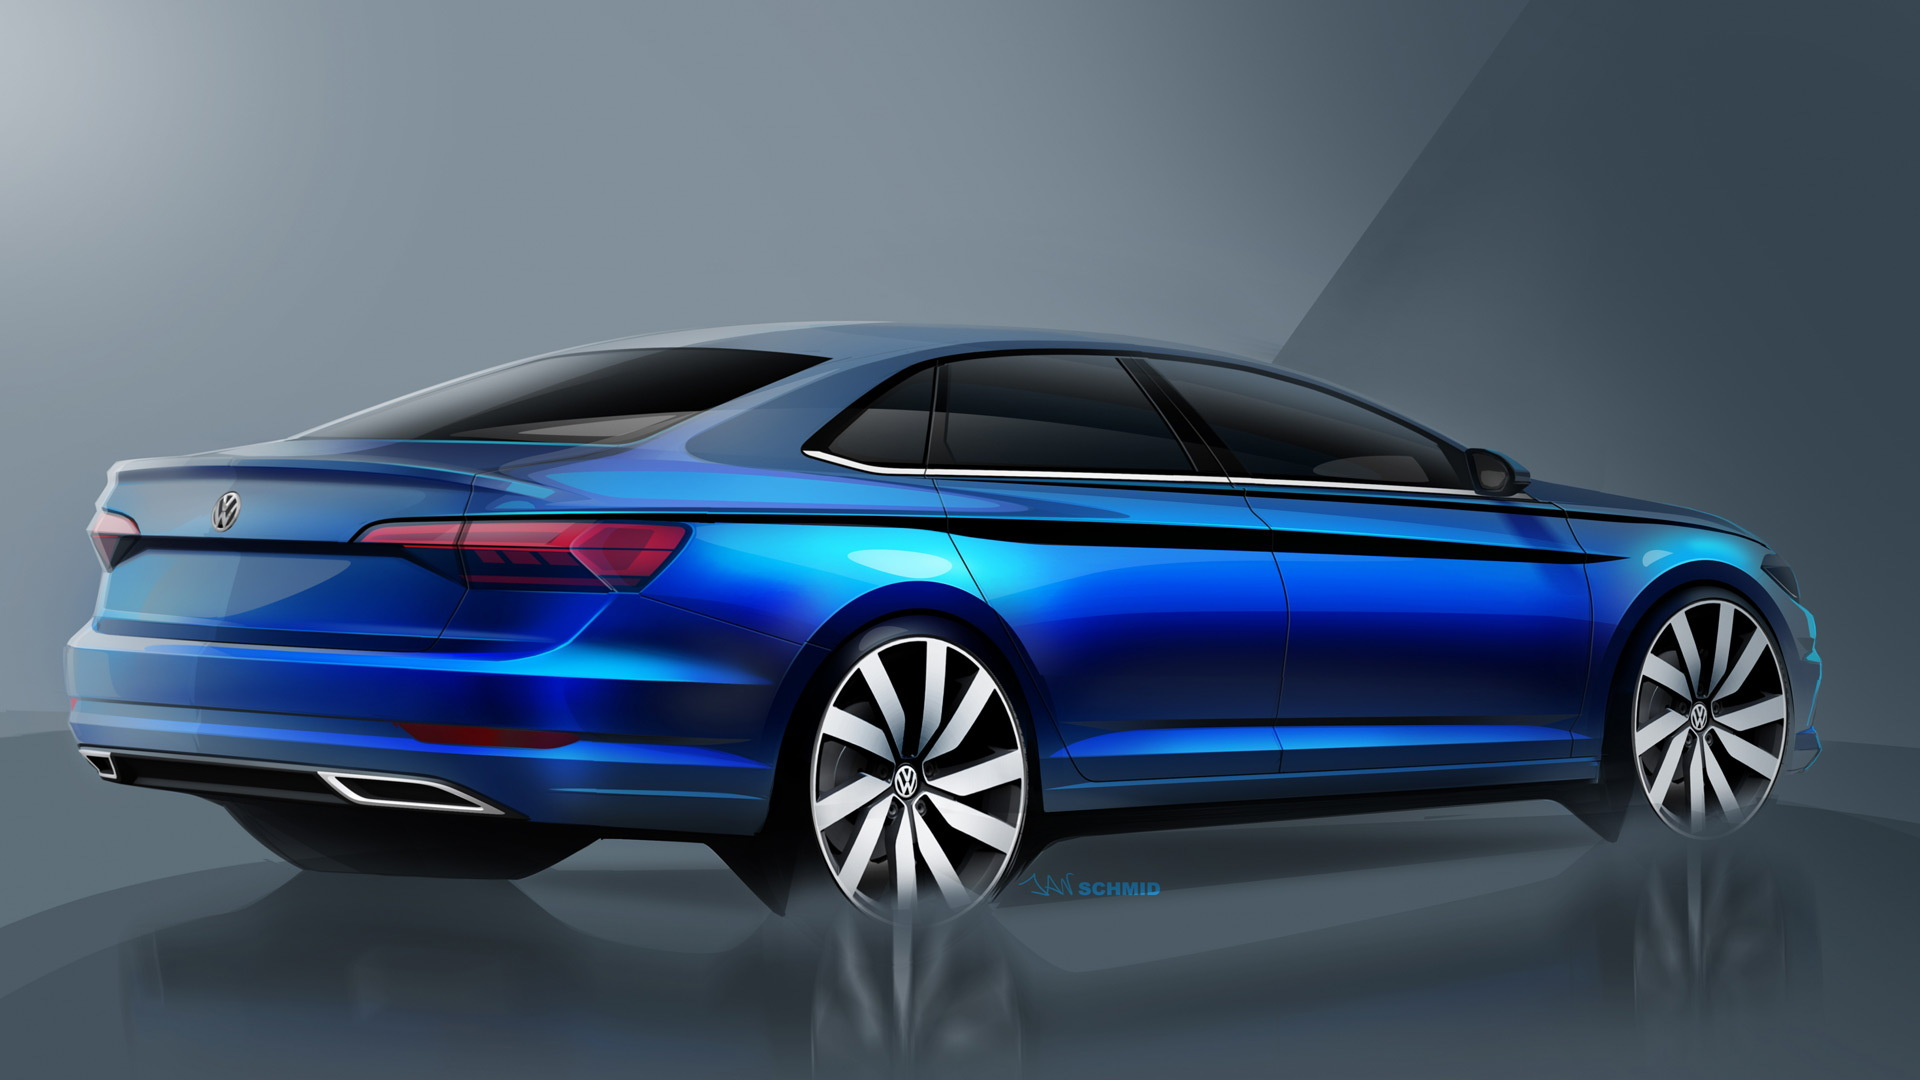 Teaser for 2019 Volkswagen Jetta debuting at 2018 Detroit auto show